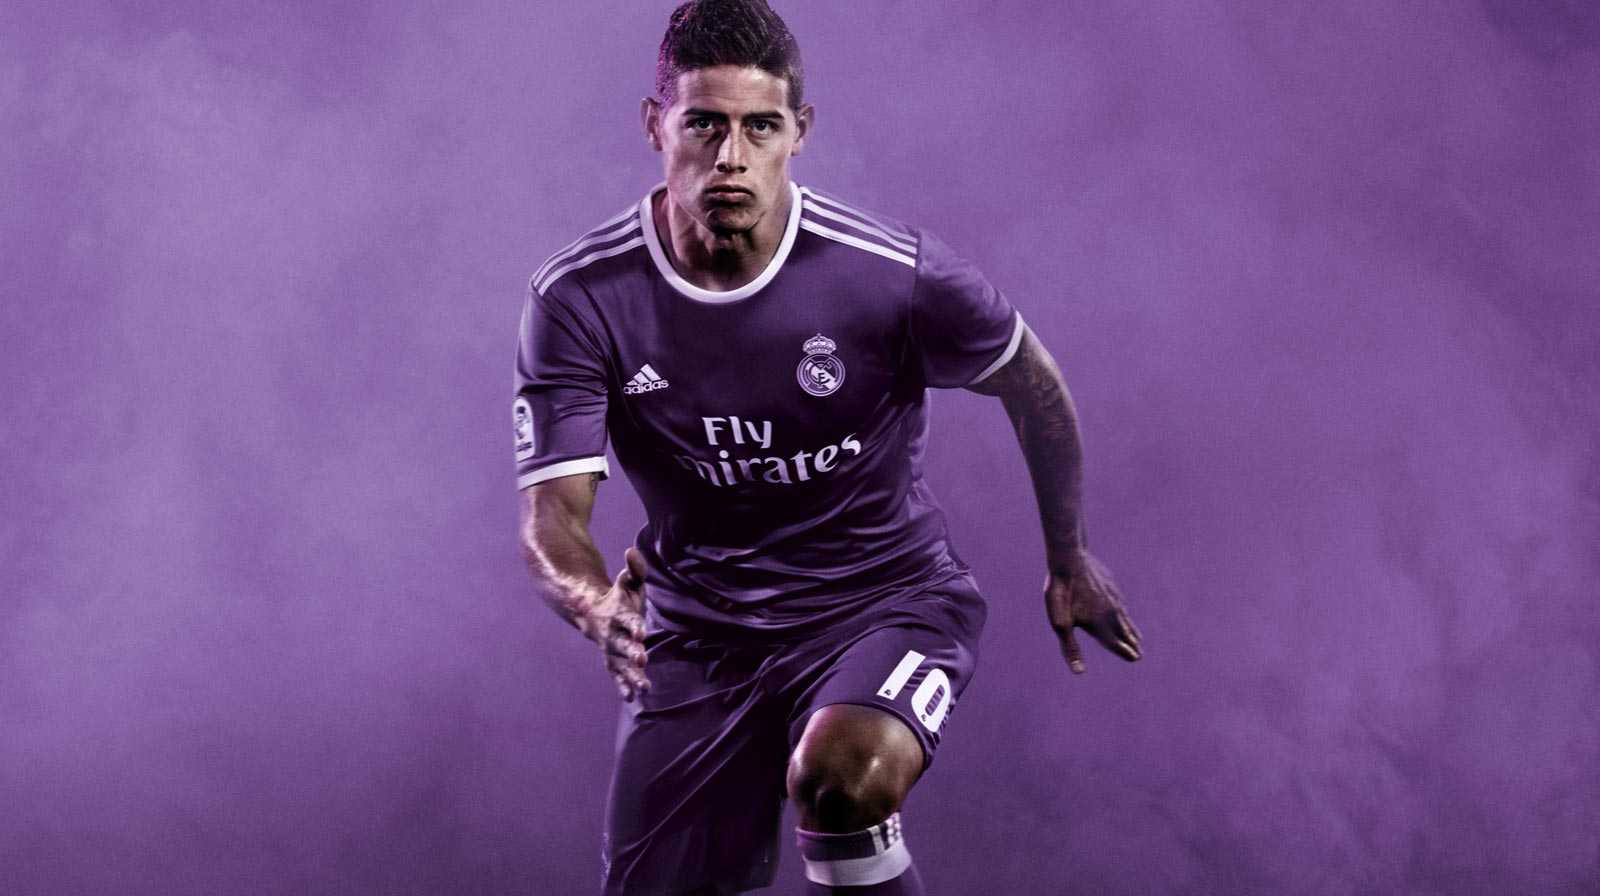 Real Madrid Away Kit Real Madrid 16-17 Away Released - Footy Headlines